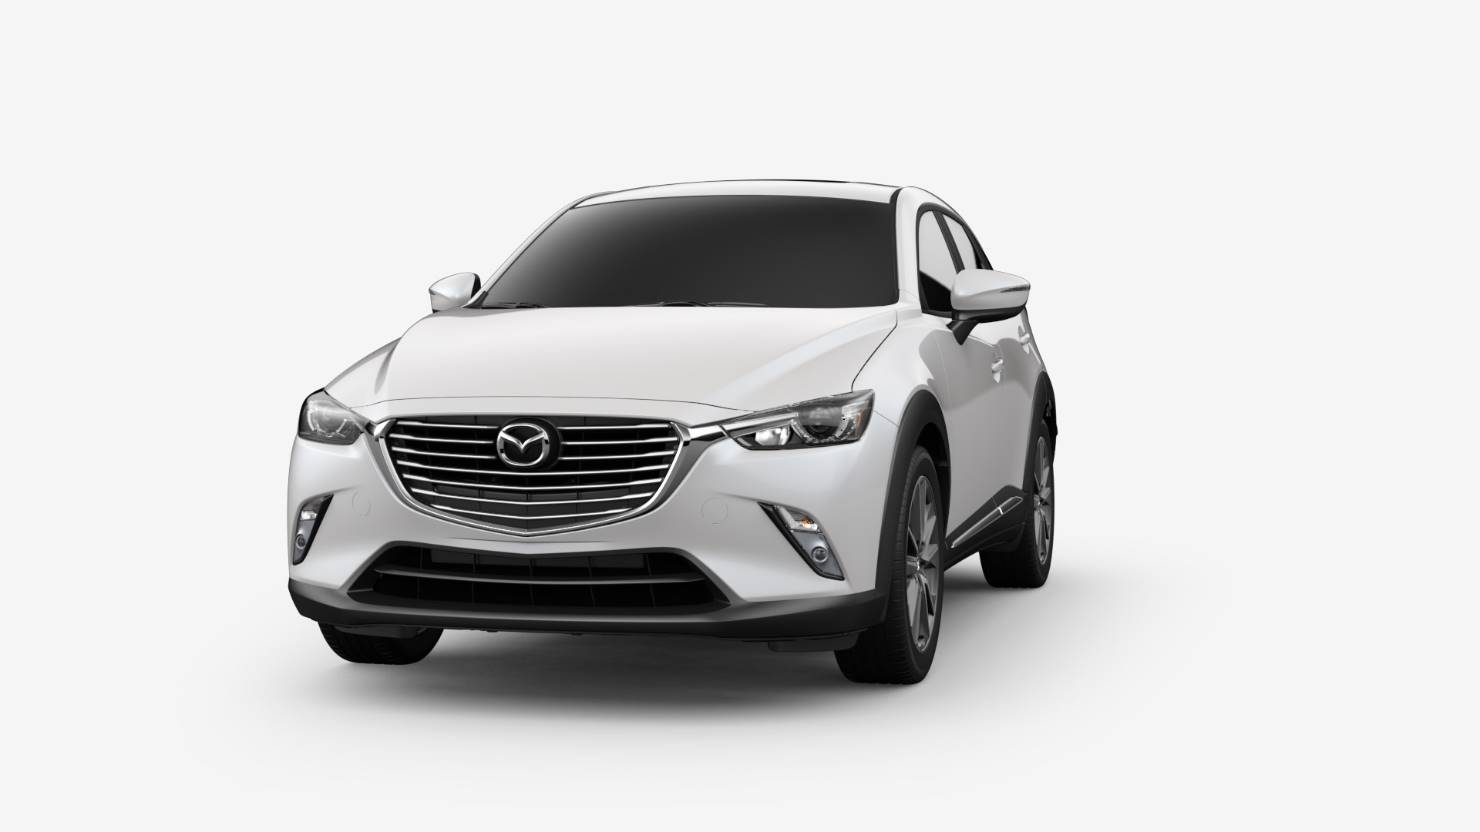 What Are The Packages Available For The 2018 Mazda Cx 3